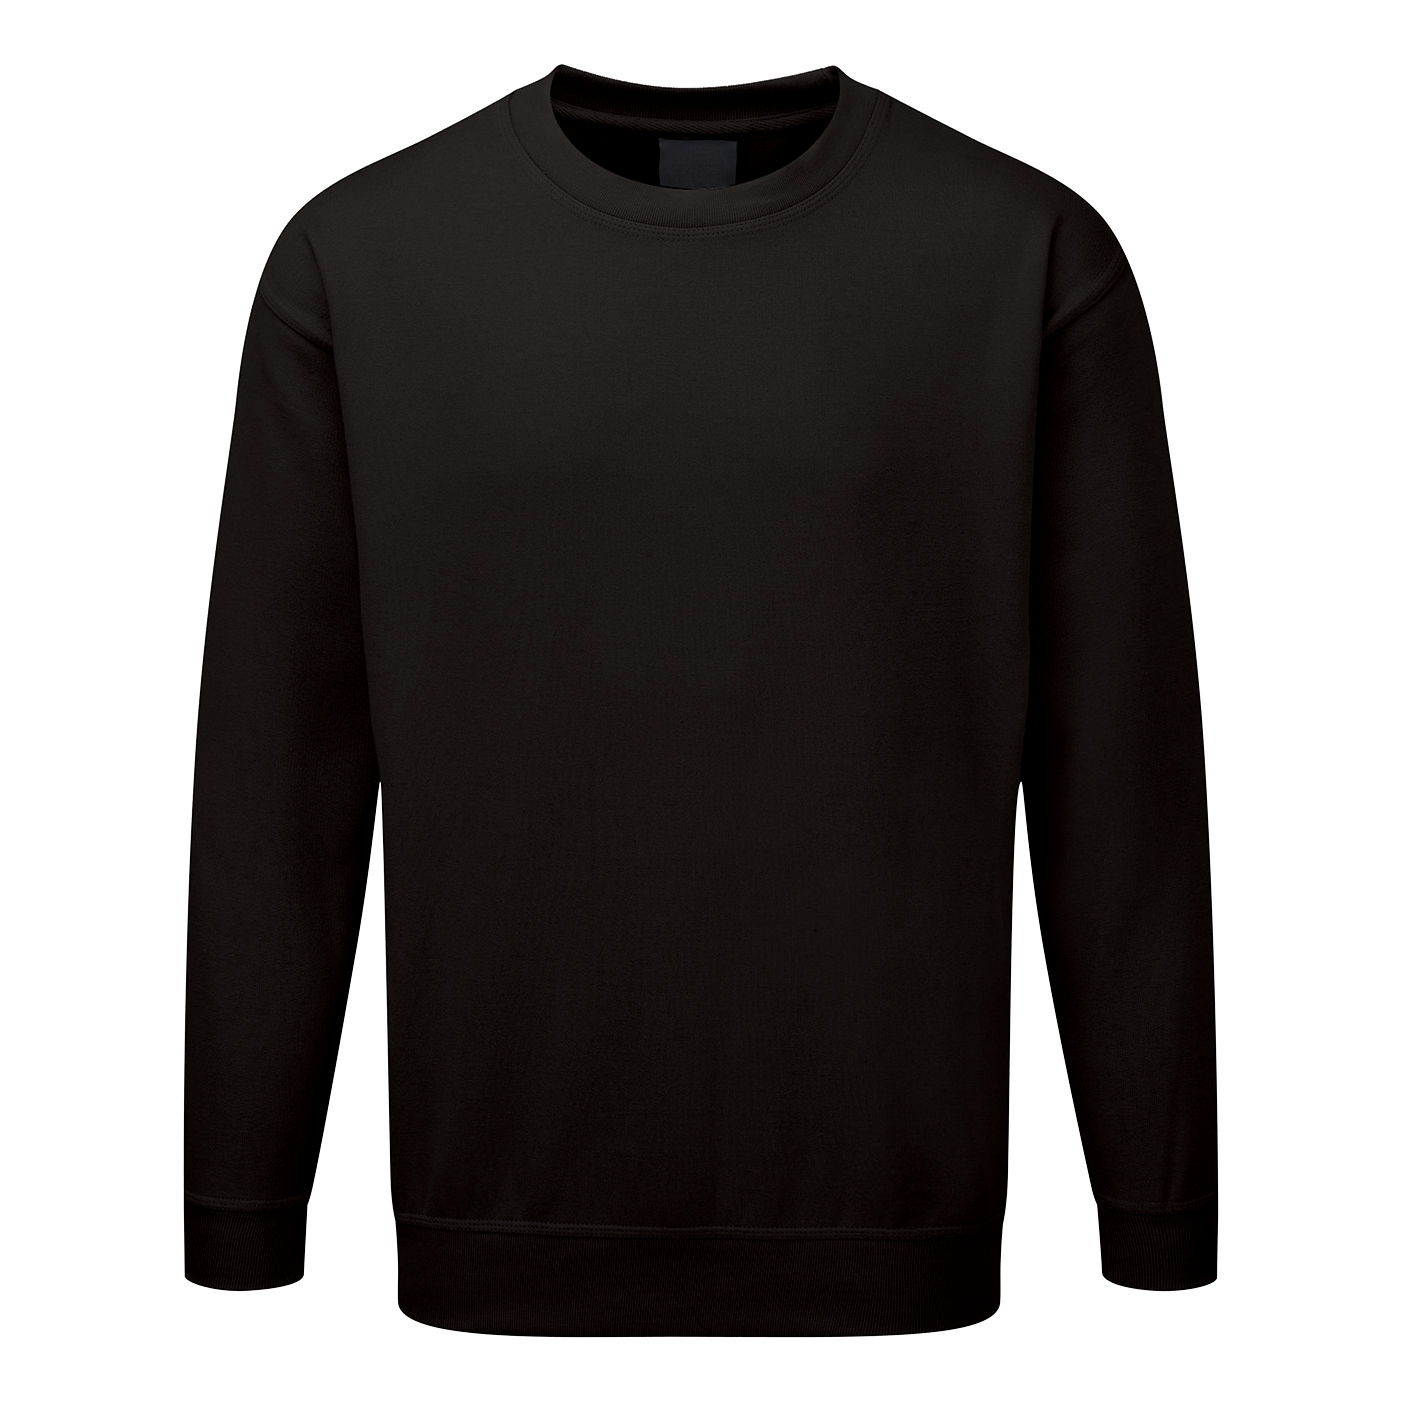 ST Sweatshirt Polyester/Cotton Fabric with Crew Neck XXLarge Black Ref 56675 *Approx 3 Day Leadtime*